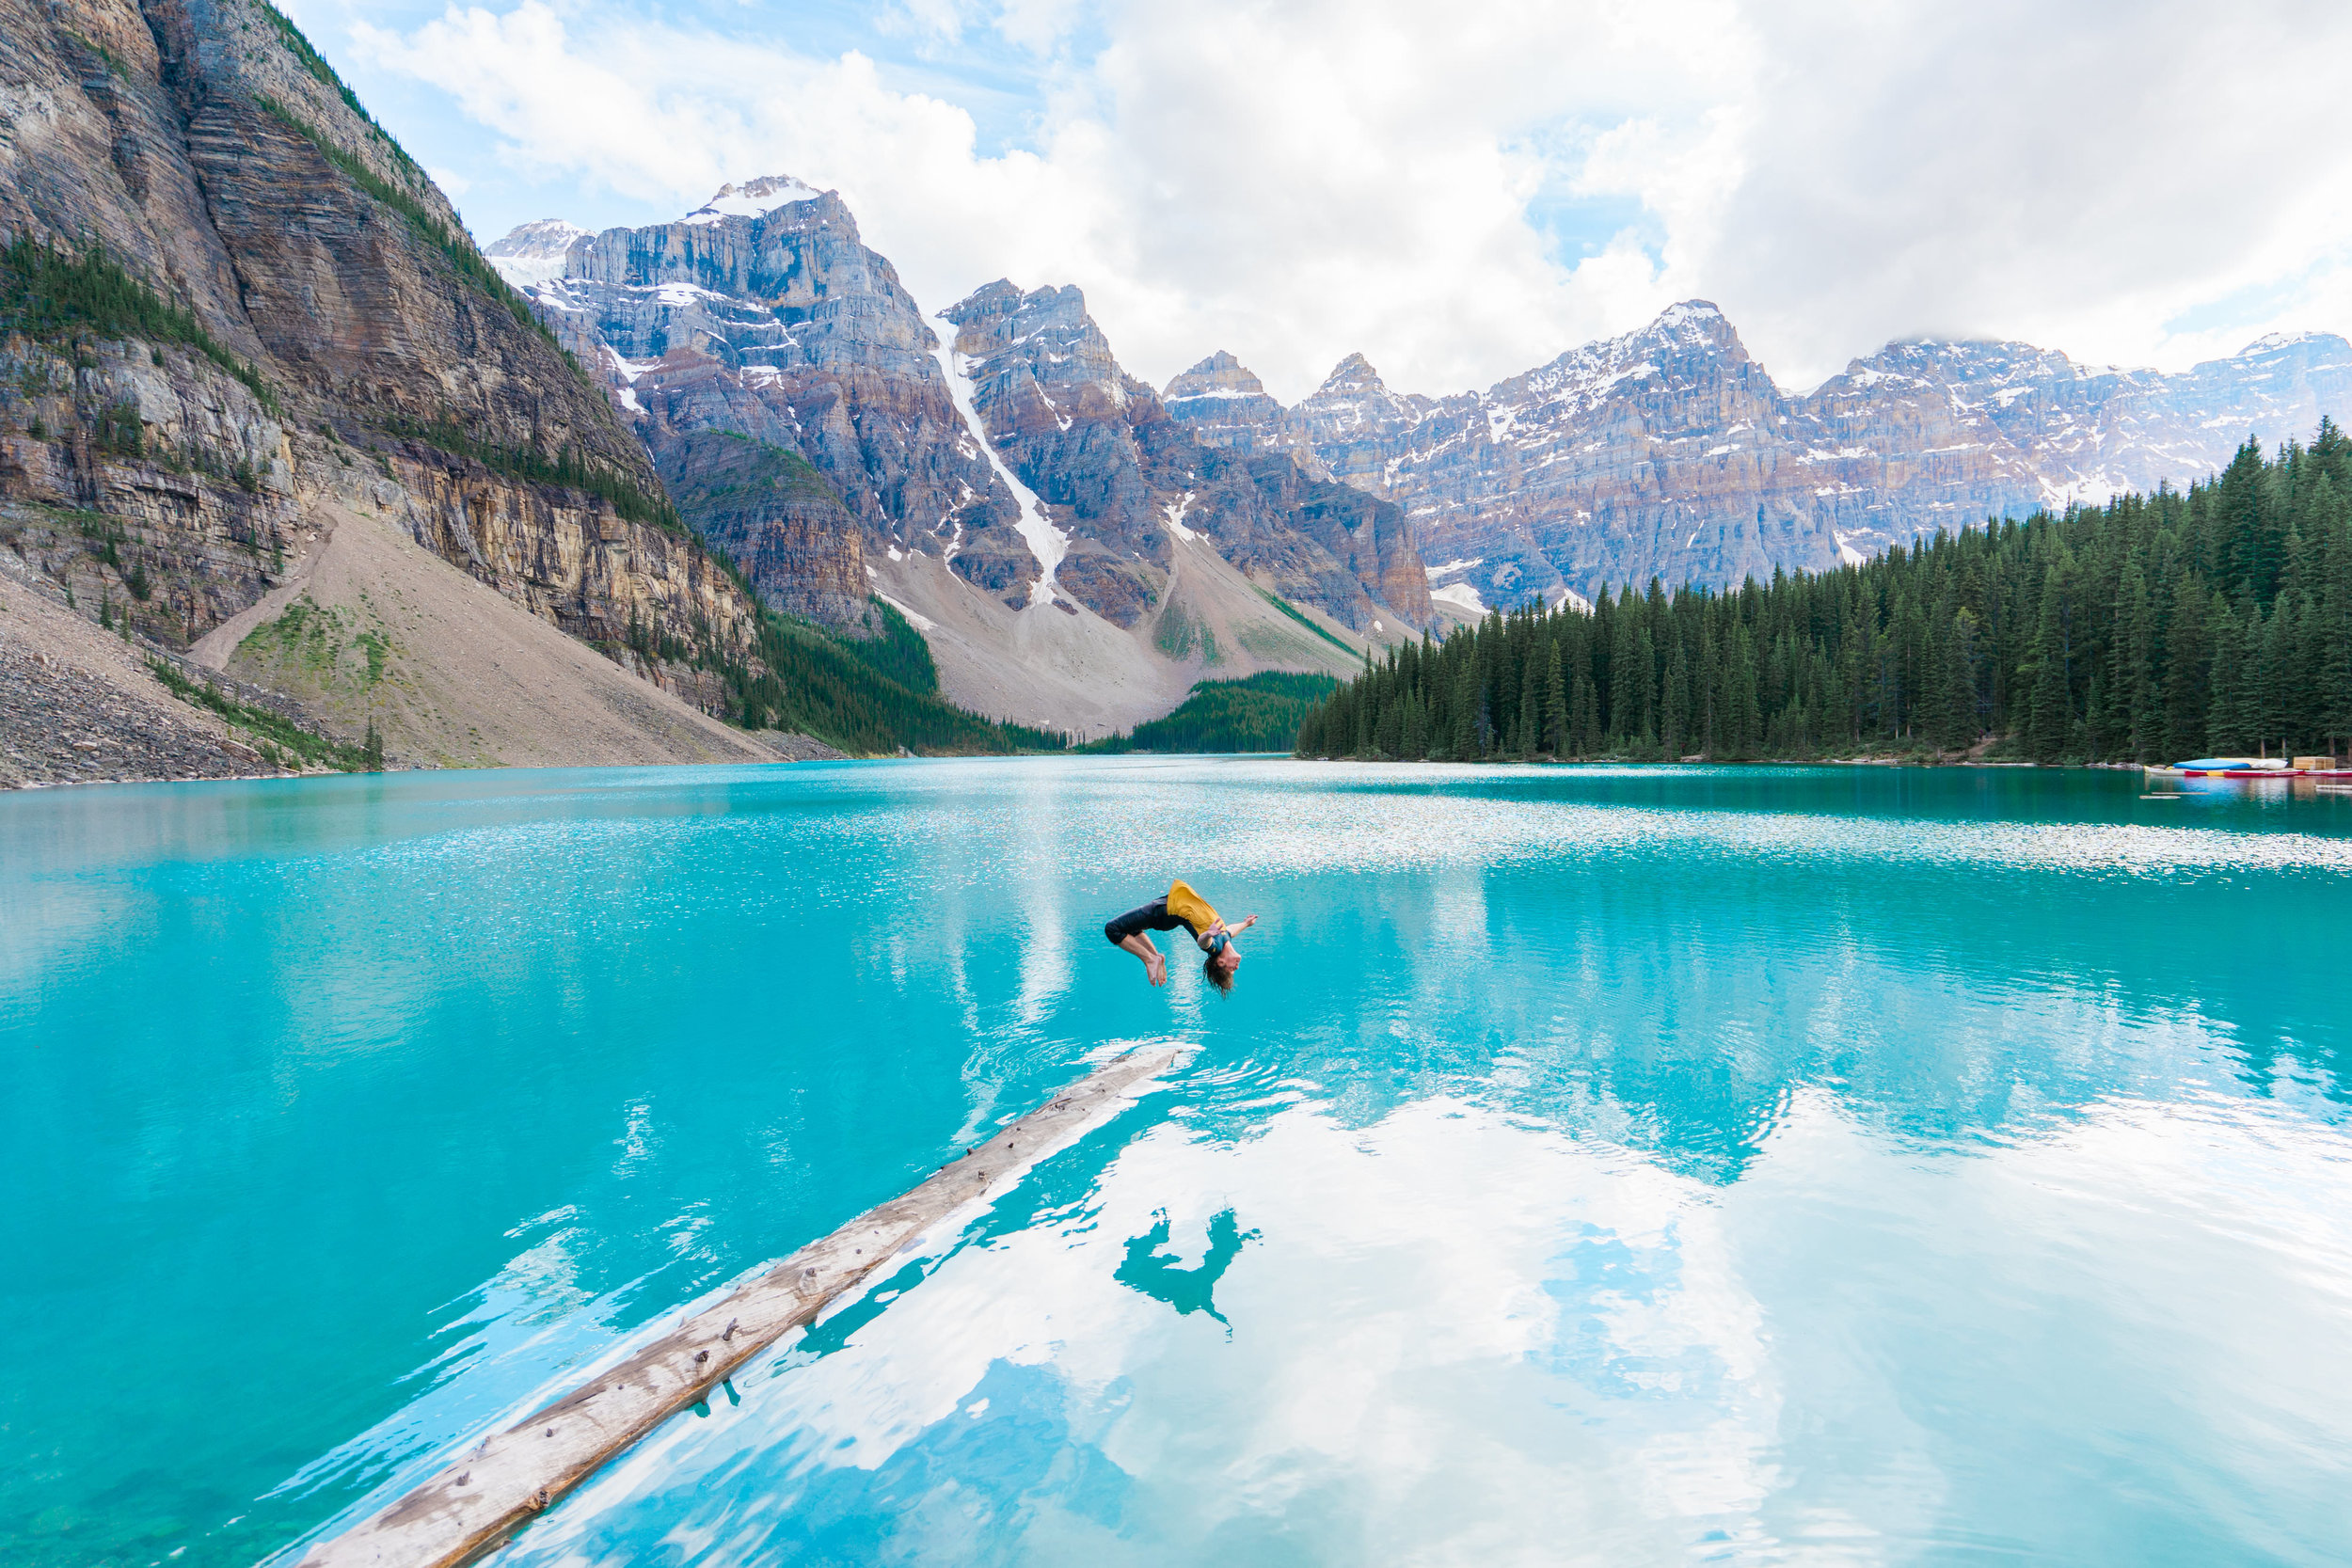 exploring canada in banff national park